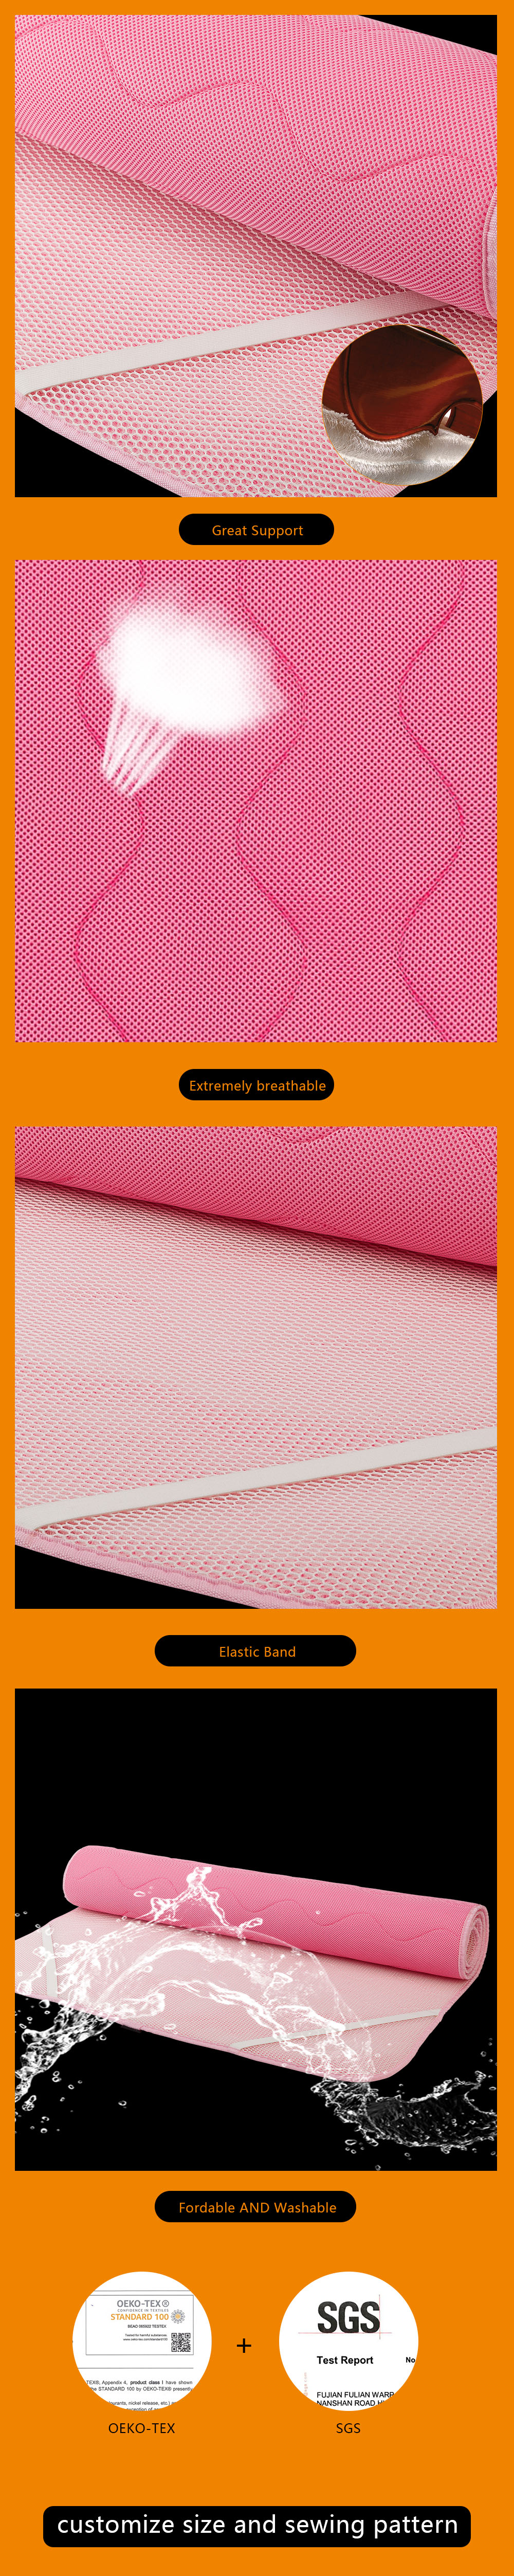 Great support pink washable 3d spacer mesh fabric cooling wholesale washable bed pads,mattress protector